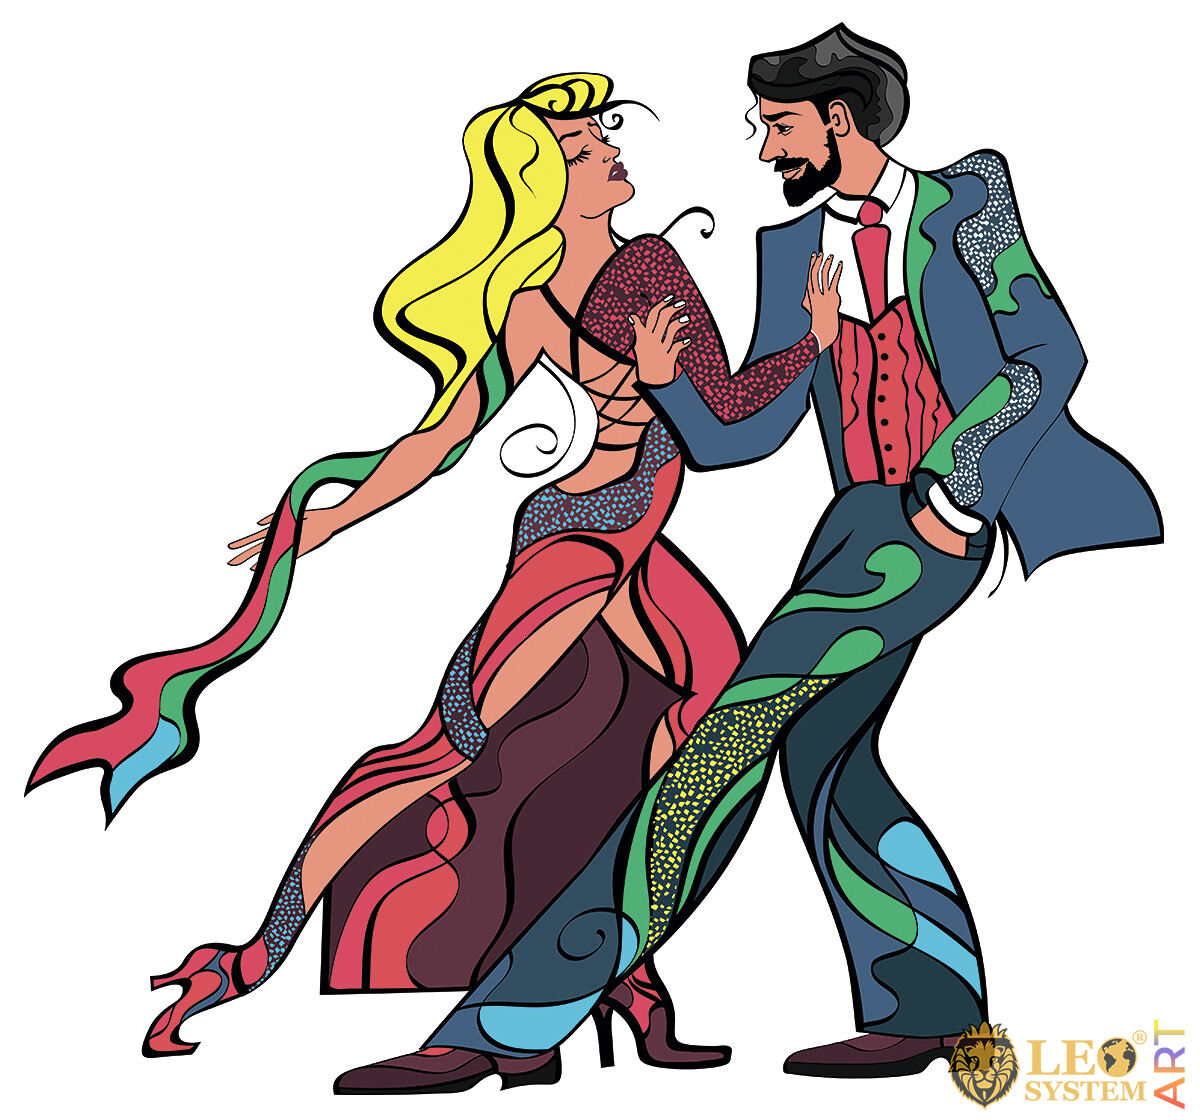 Picture with a dancing couple in colorful costumes